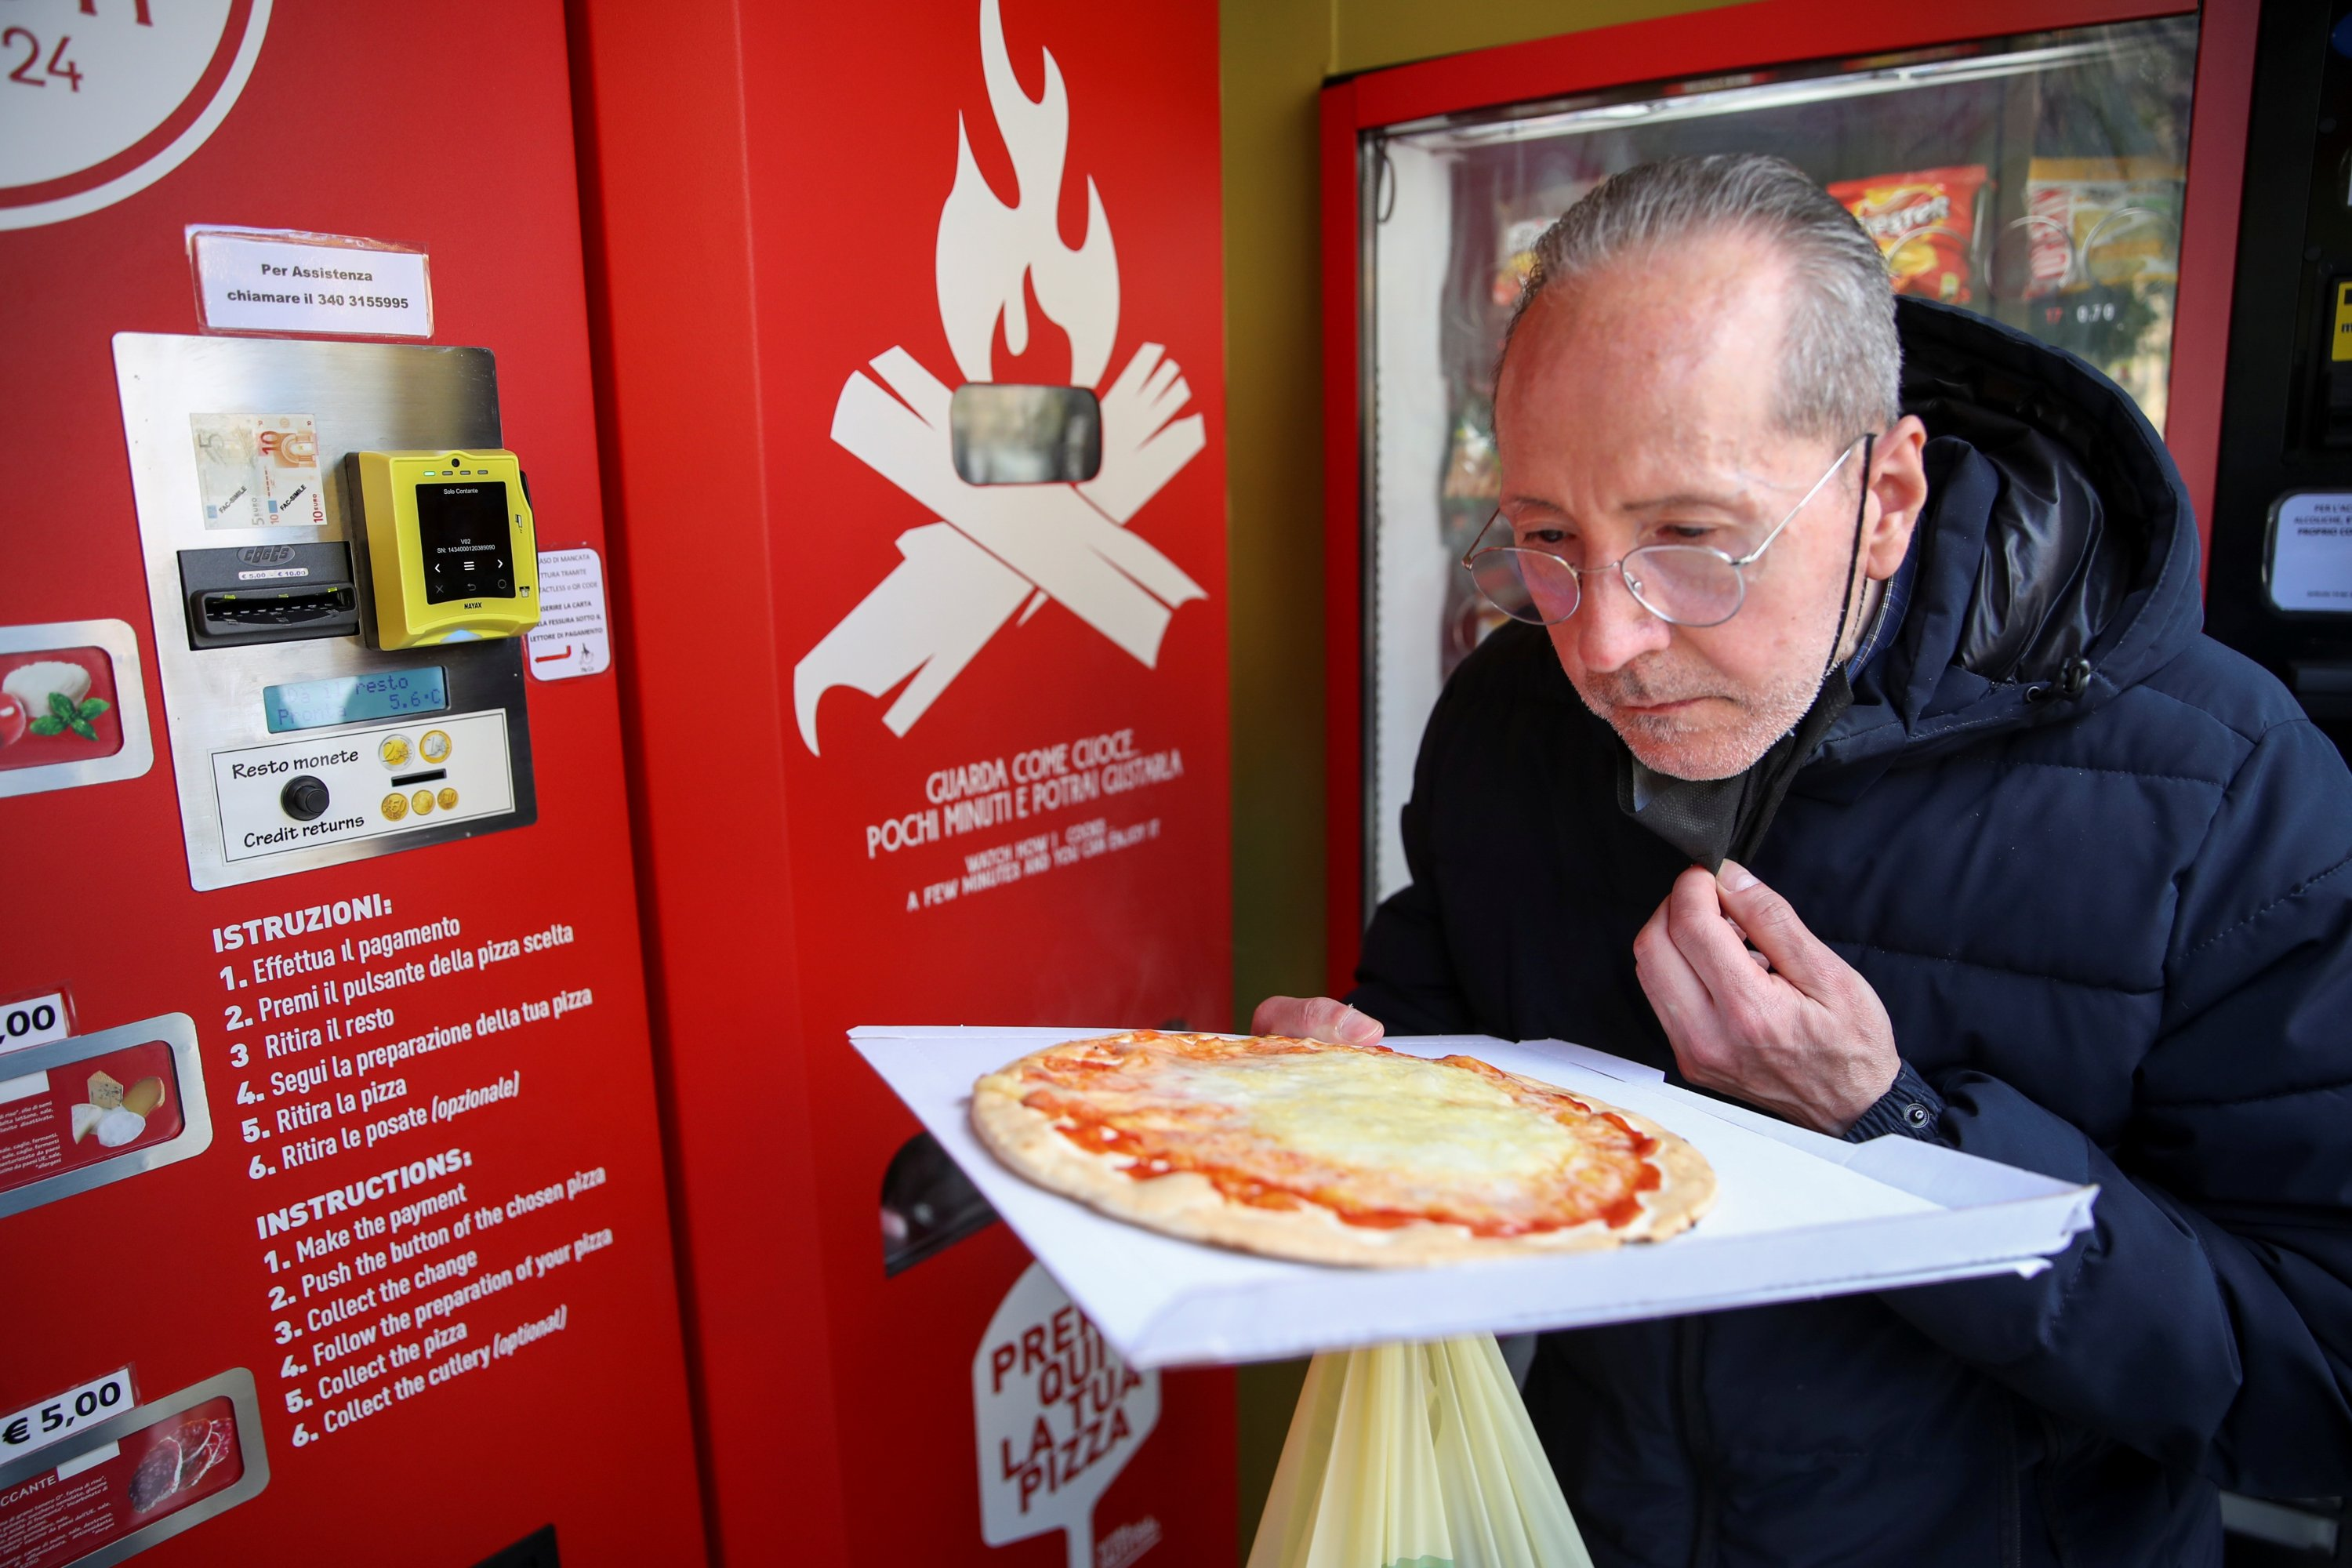 Claudio Zampiga sniffs his pizza at the first automatic pizza vending machine, which is capable of kneading, seasoning and cooking the pizza in three minutes, in Rome, Italy, May 6, 2021. (Reuters Photo)